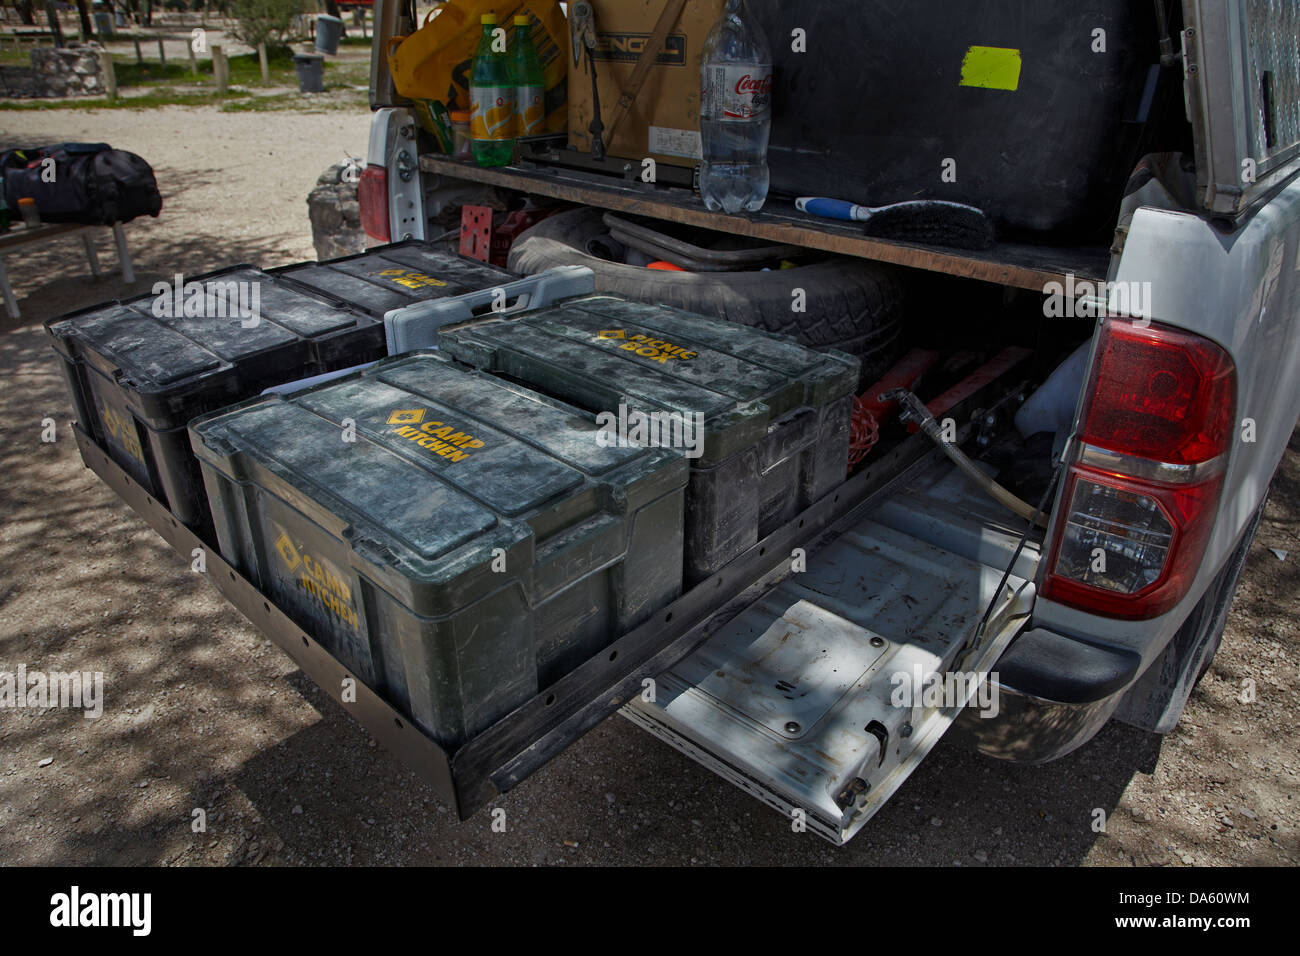 Slide-out equipment drawers on 4x4 camper, Namibia, Africa - Stock Image